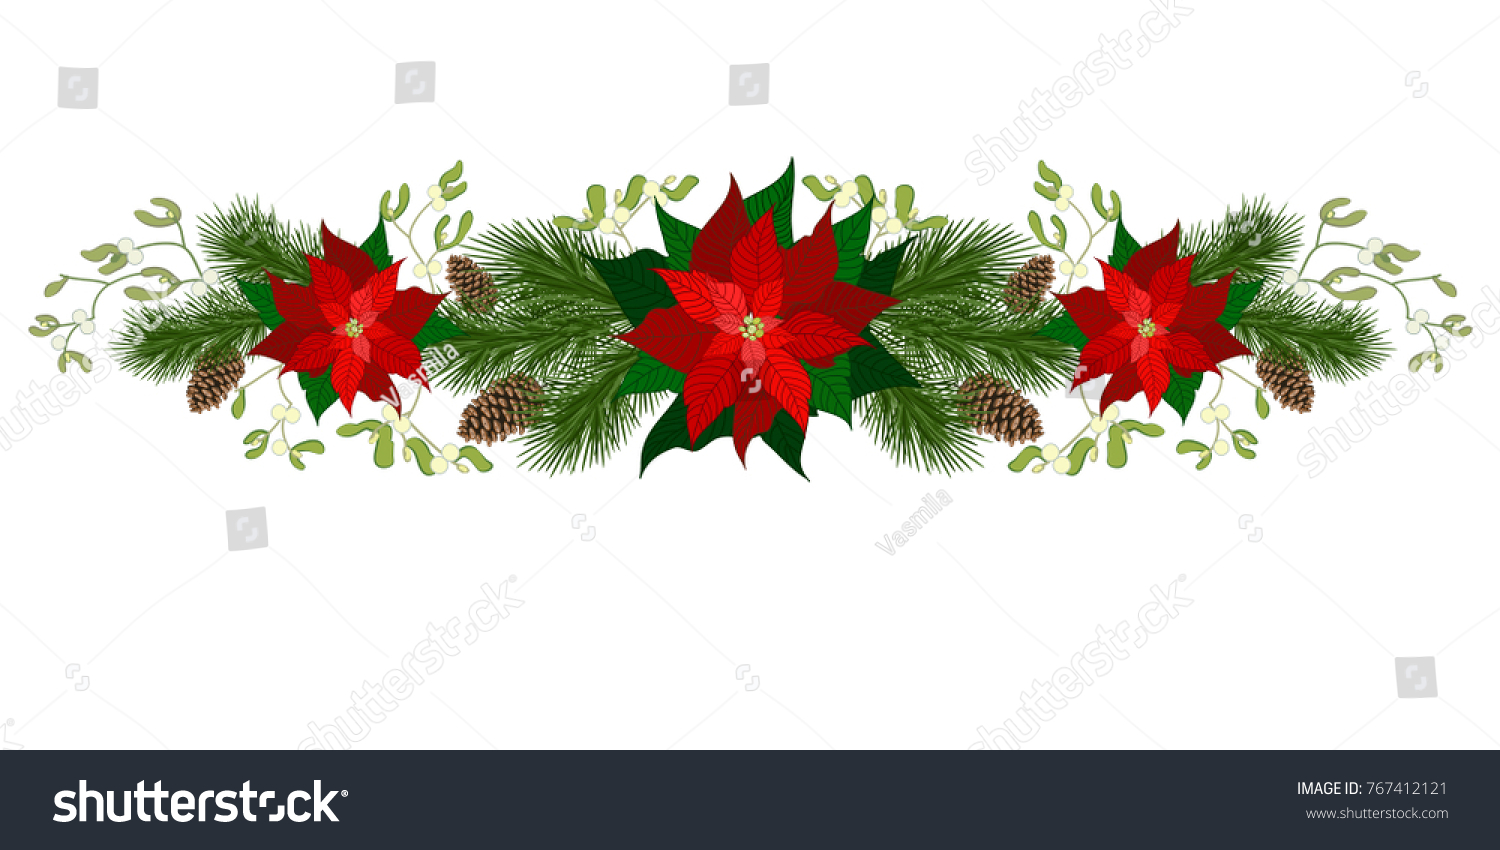 christmas decorations with poinsettia fir tree pine cones mistletoe and decorative elements - Poinsettia Christmas Decorations